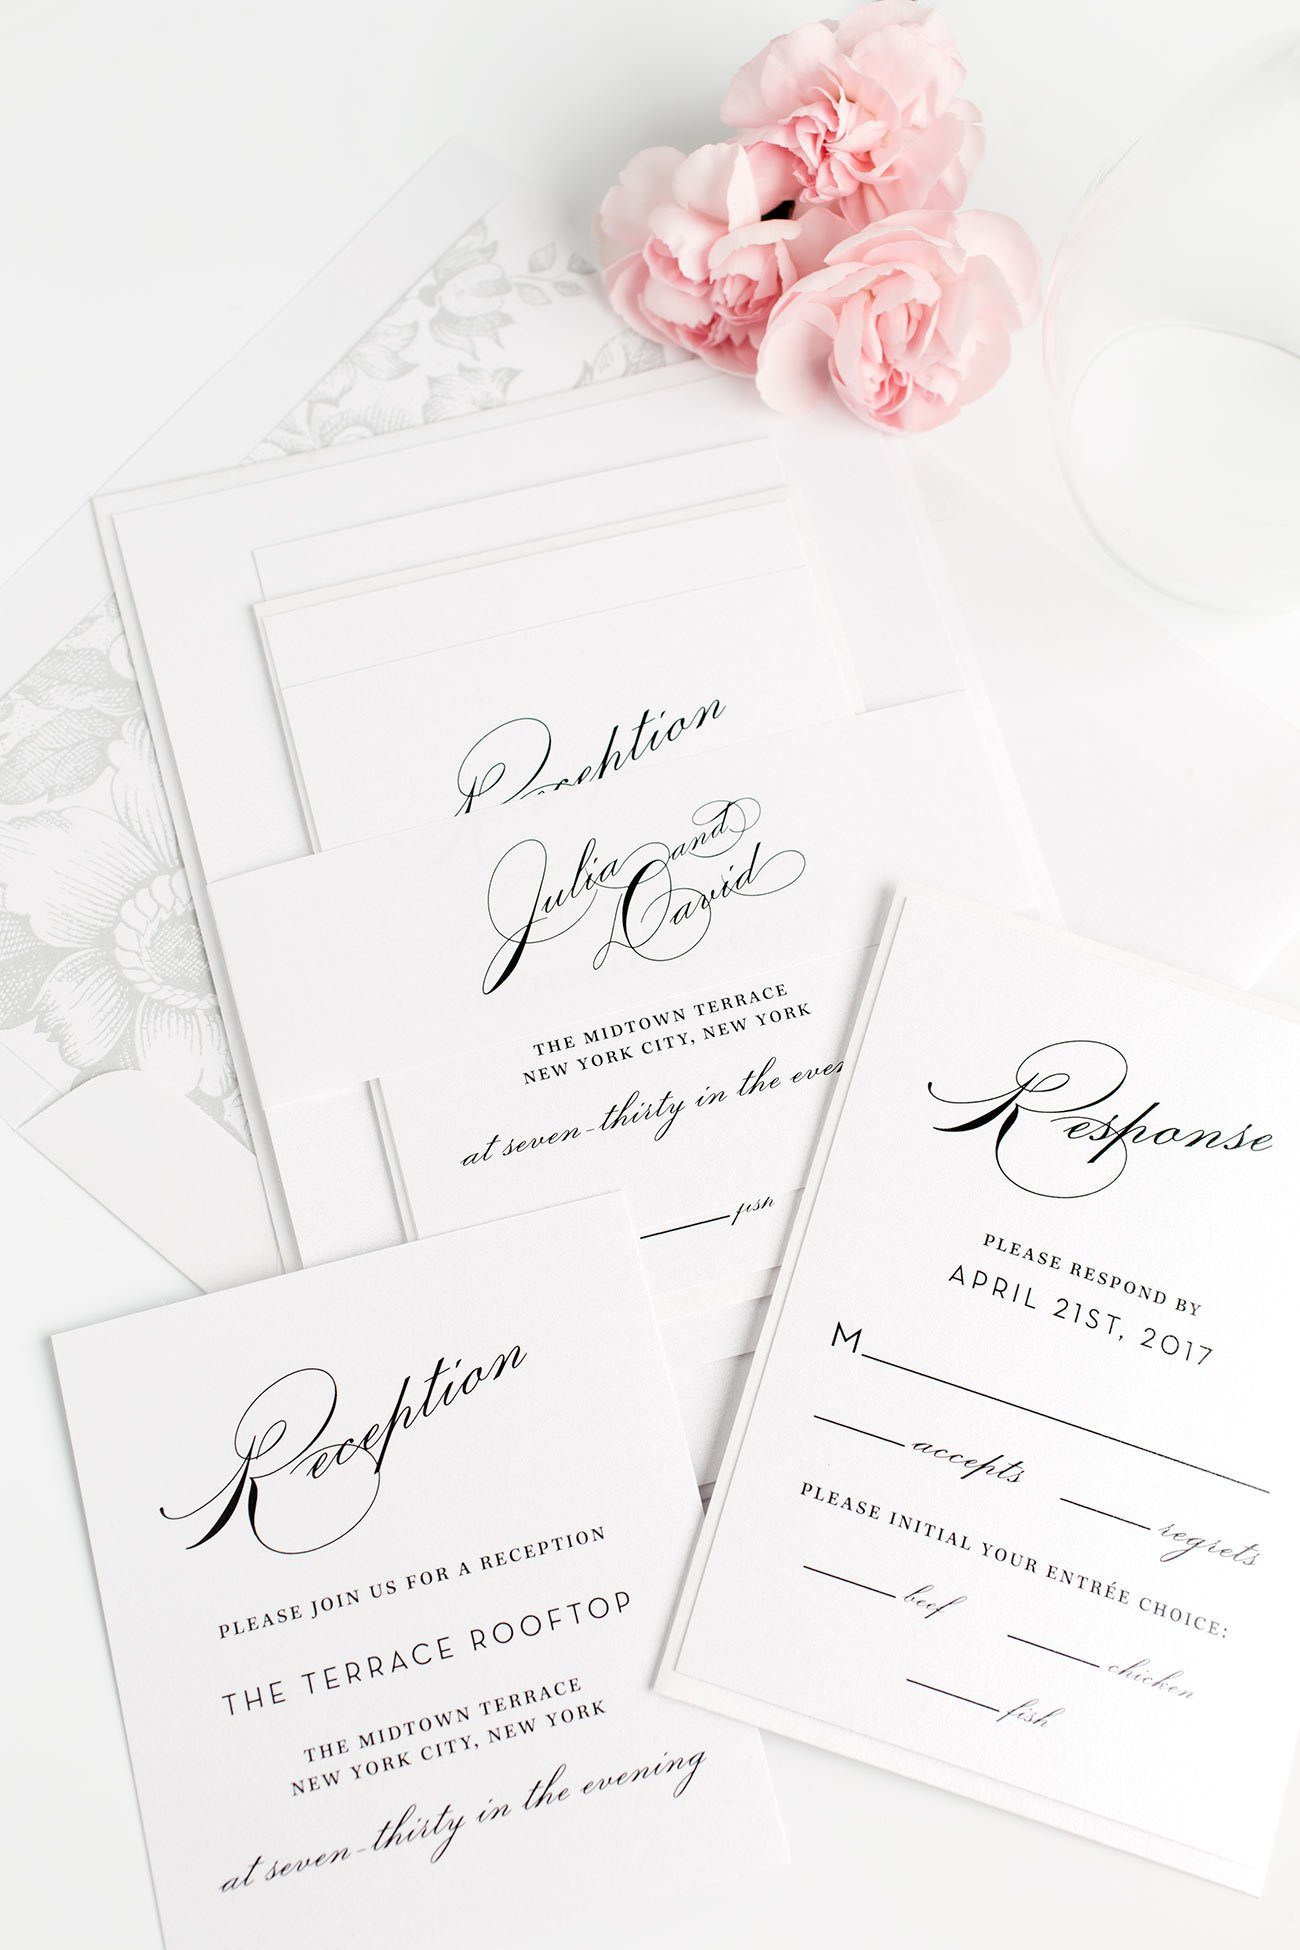 Garden Wedding Invitations with a Floral Liner and Glamorous Calligraphy